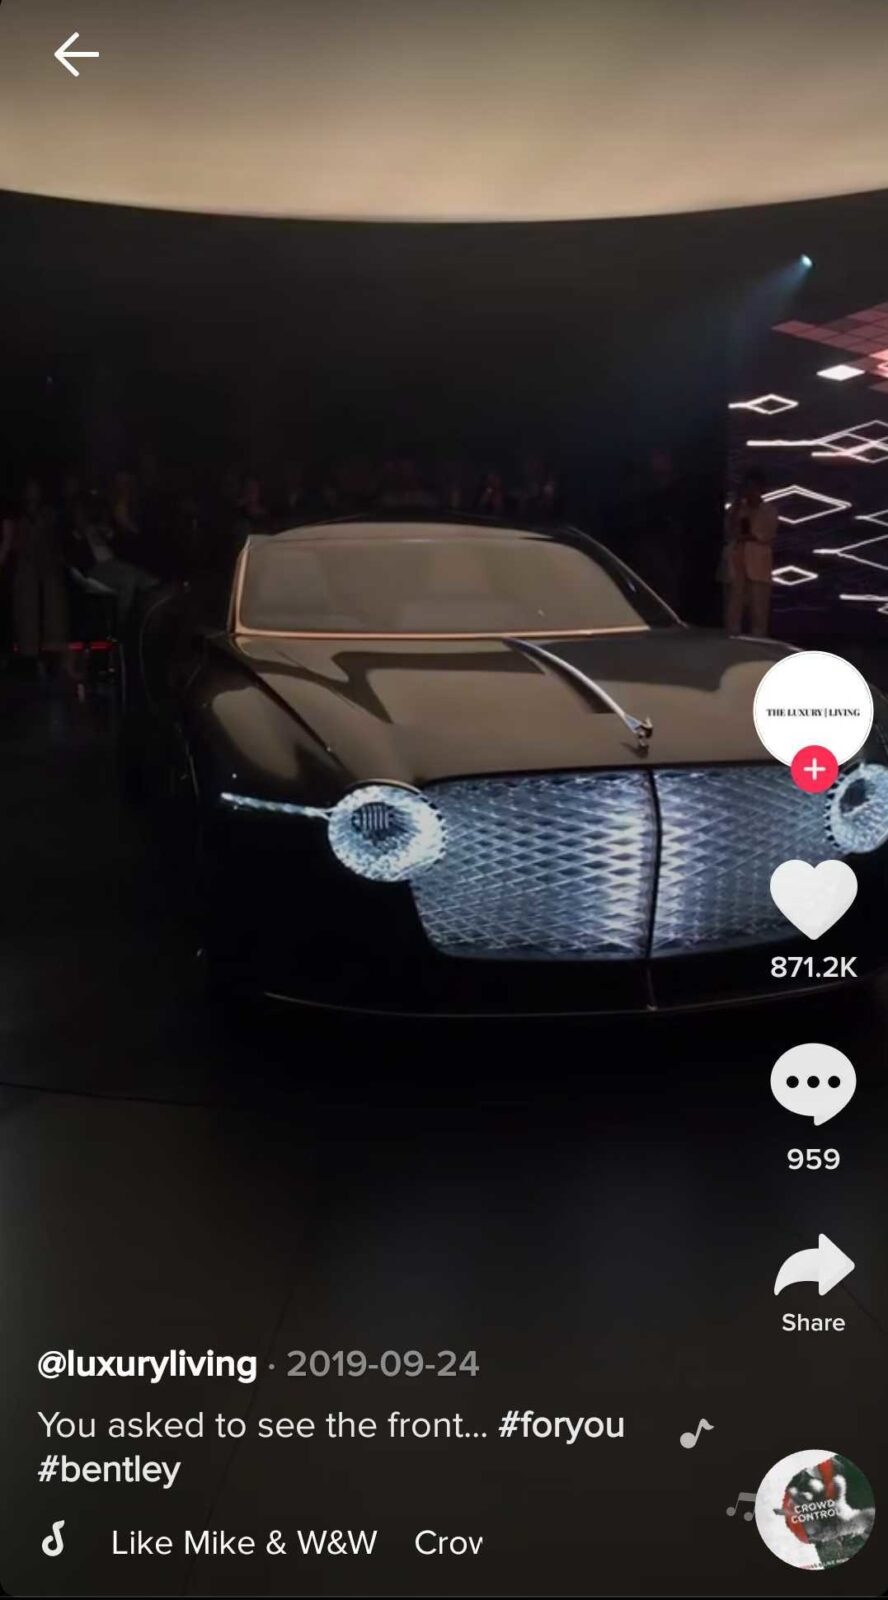 Sociably TikTok video for Bentley luxury car brand